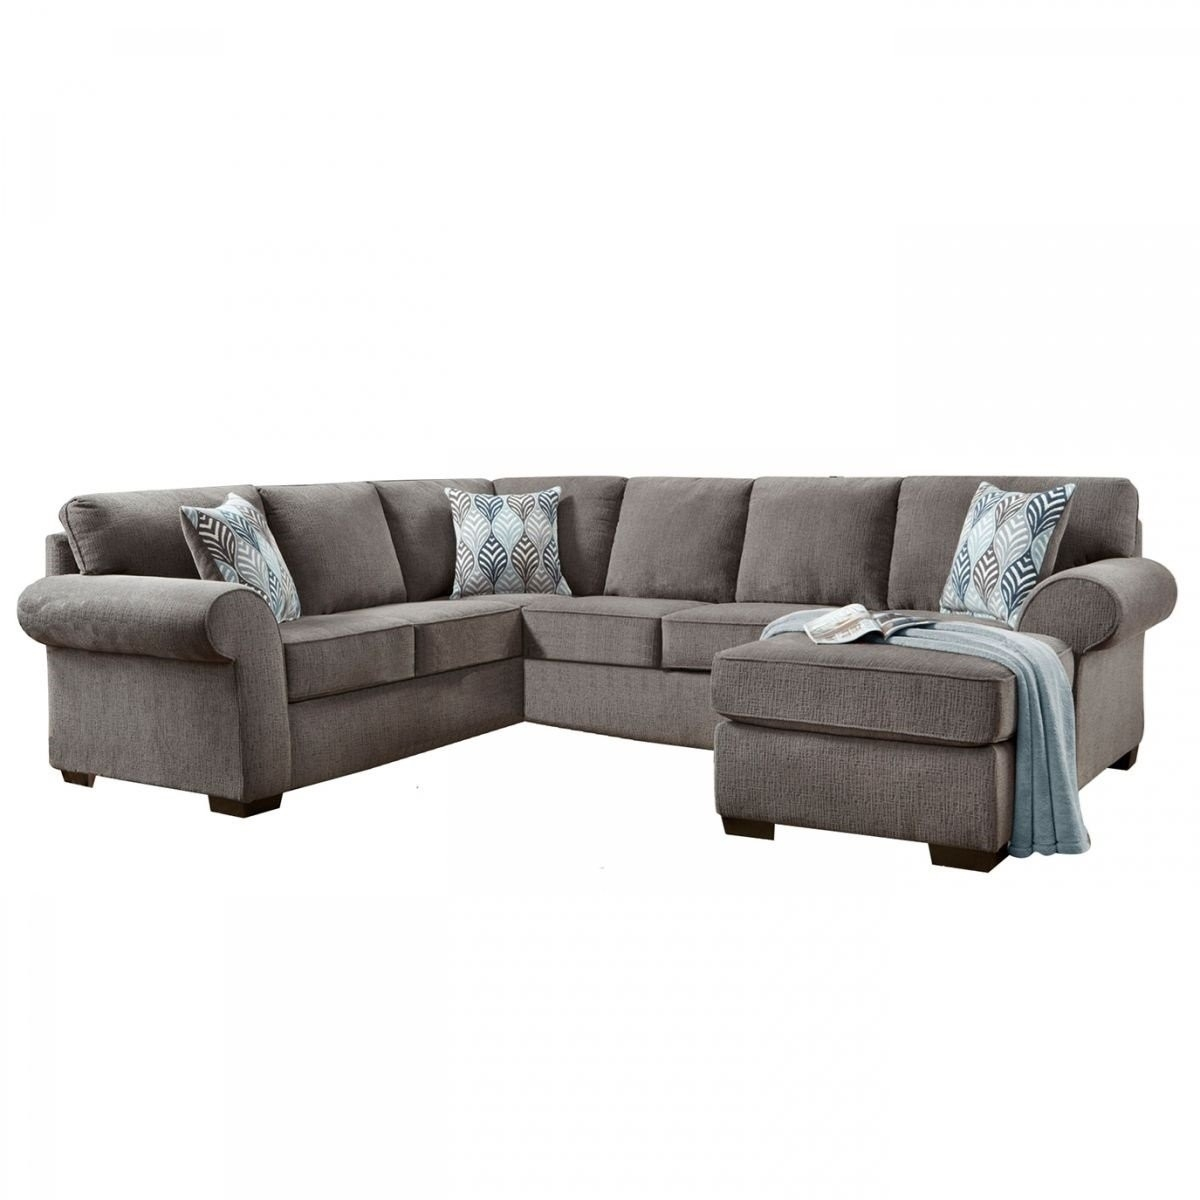 Grey Sectional Mcdade Graphite 2 Piece W Raf Chaise Living Spaces With Mcdade Graphite 2 Piece Sectionals With Laf Chaise (View 2 of 25)